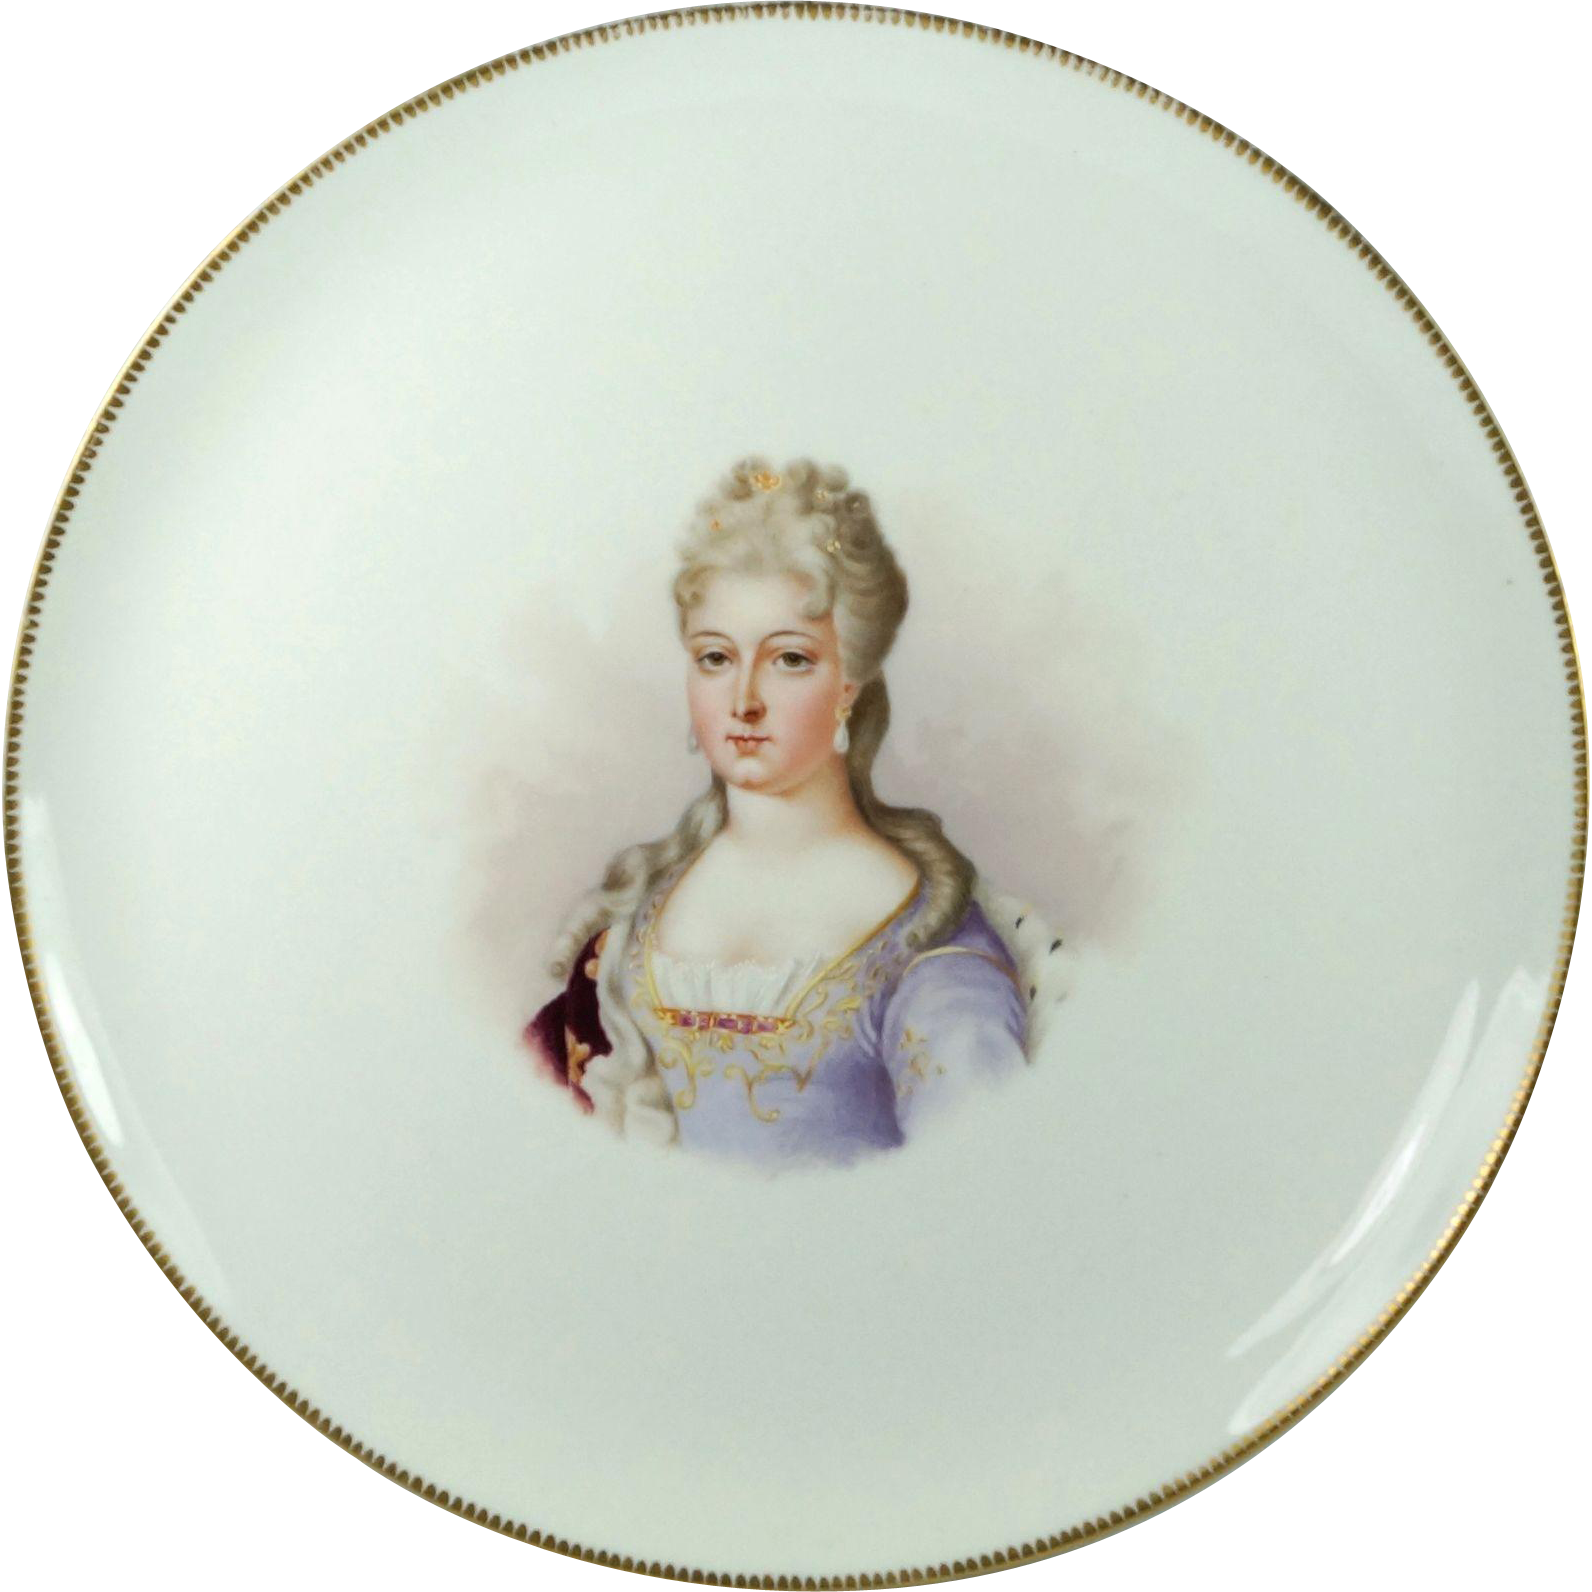 Antique Chateau Des Tuileries Hand Painted Porcelain Plate Duchesse Du Berry Signed Dated 1888